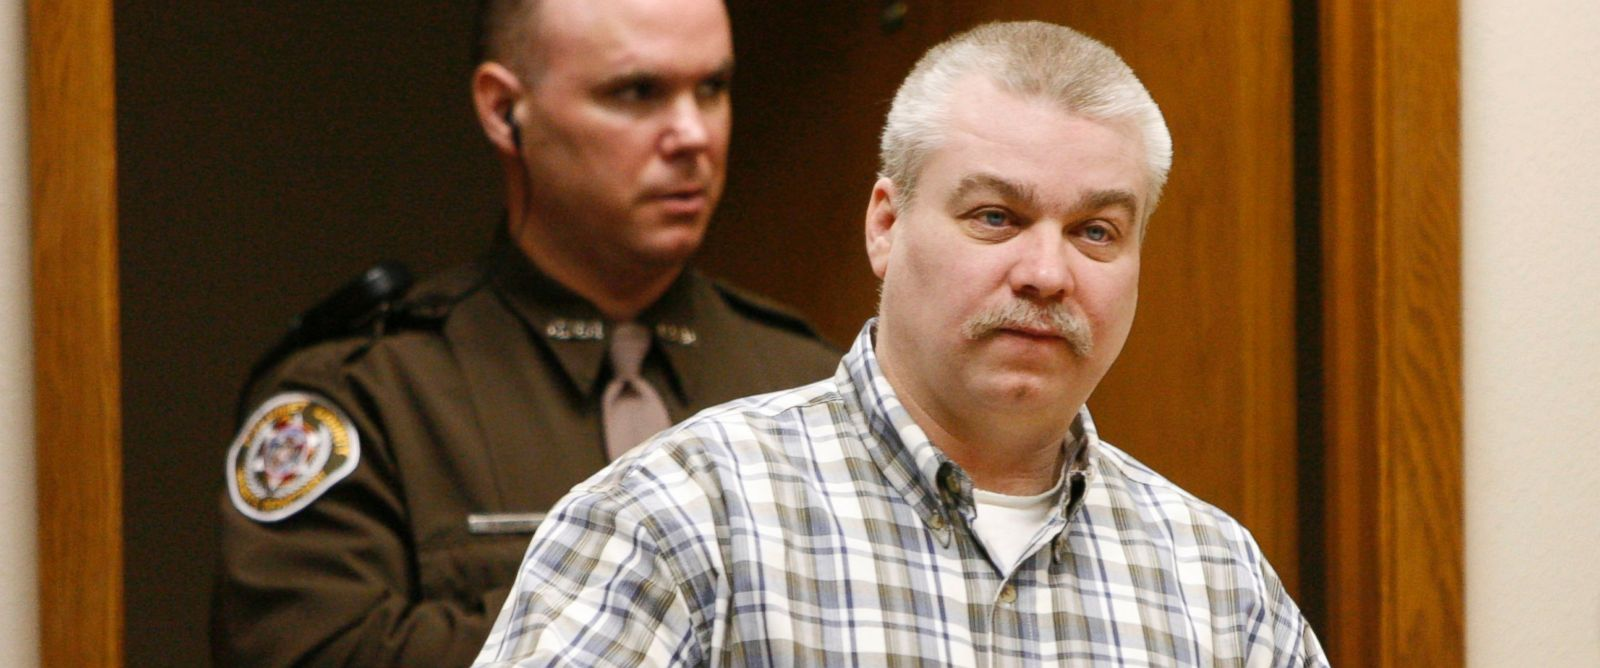 PHOTO: Steven Avery is escorted into the courtroom, March 2, 2007, at the Calumet County Courthouse in Chilton, Wis.